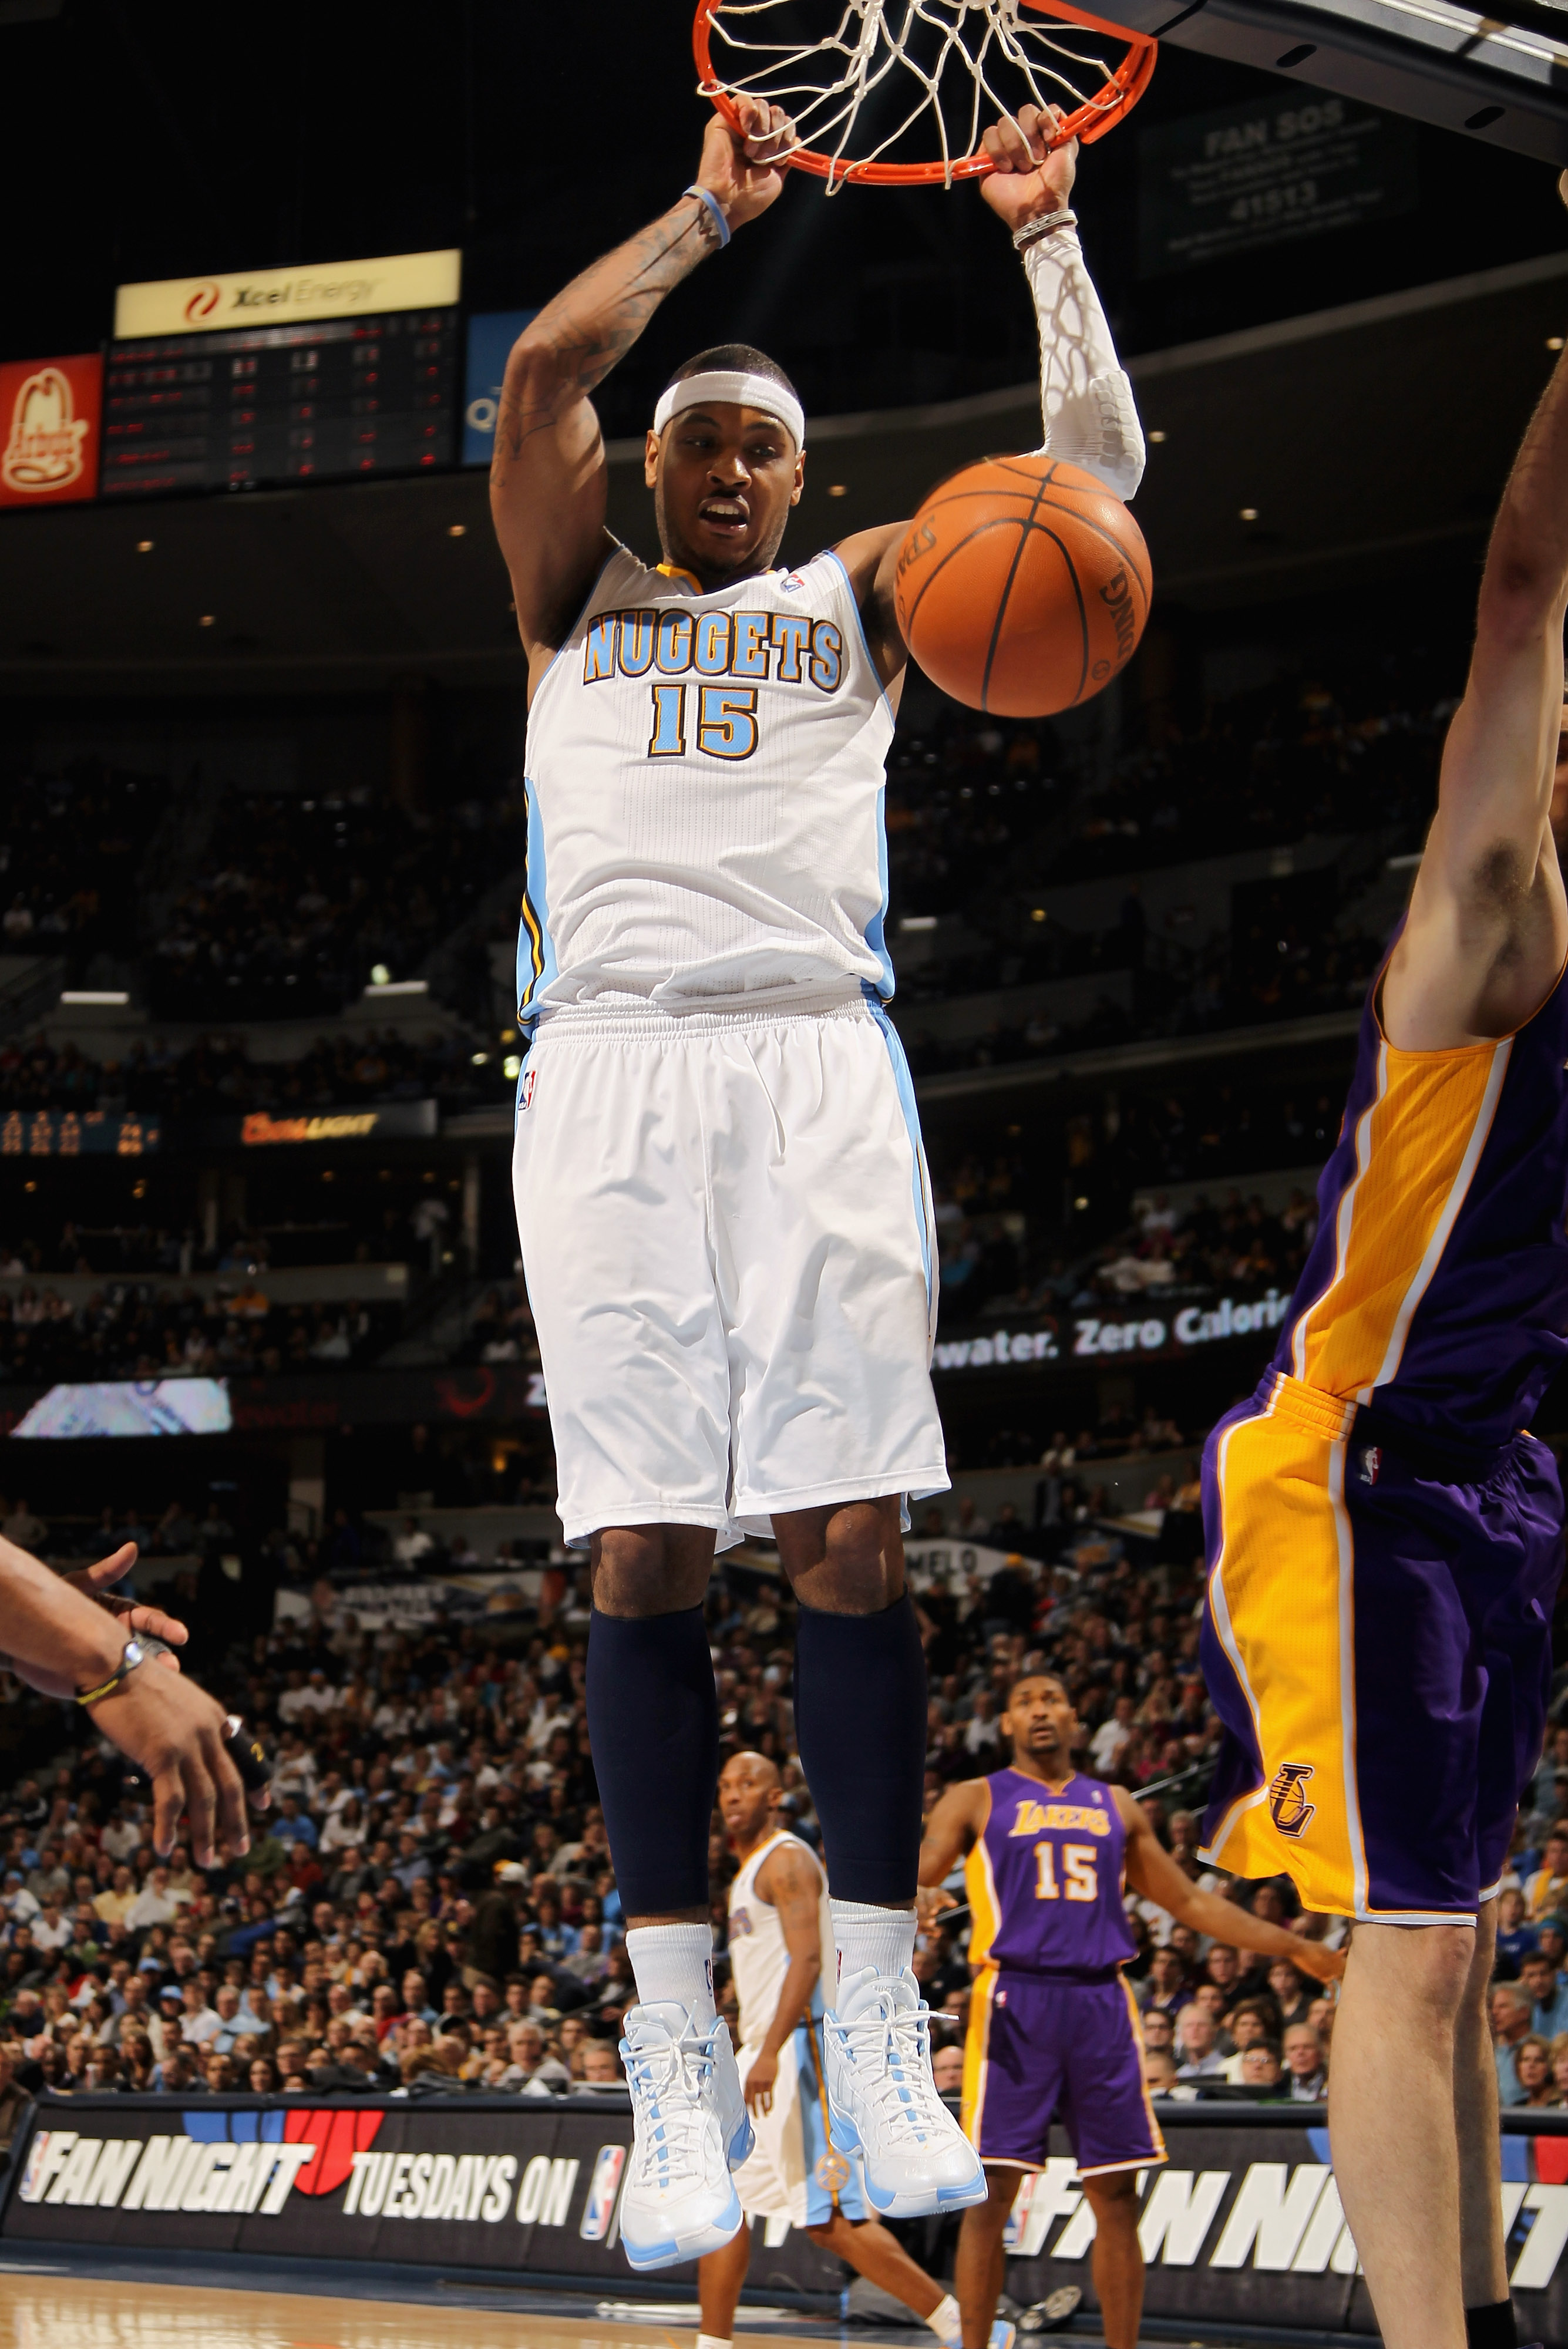 DENVER, CO - JANUARY 21:  Carmelo Anthony #15 of the Denver Nuggets dunks the ball against the Los Angeles Lakers at the Pepsi Center on January 21, 2011 in Denver, Colorado. The Lakers defeated the Nuggets 107-97. NOTE TO USER: User expressly acknowledge